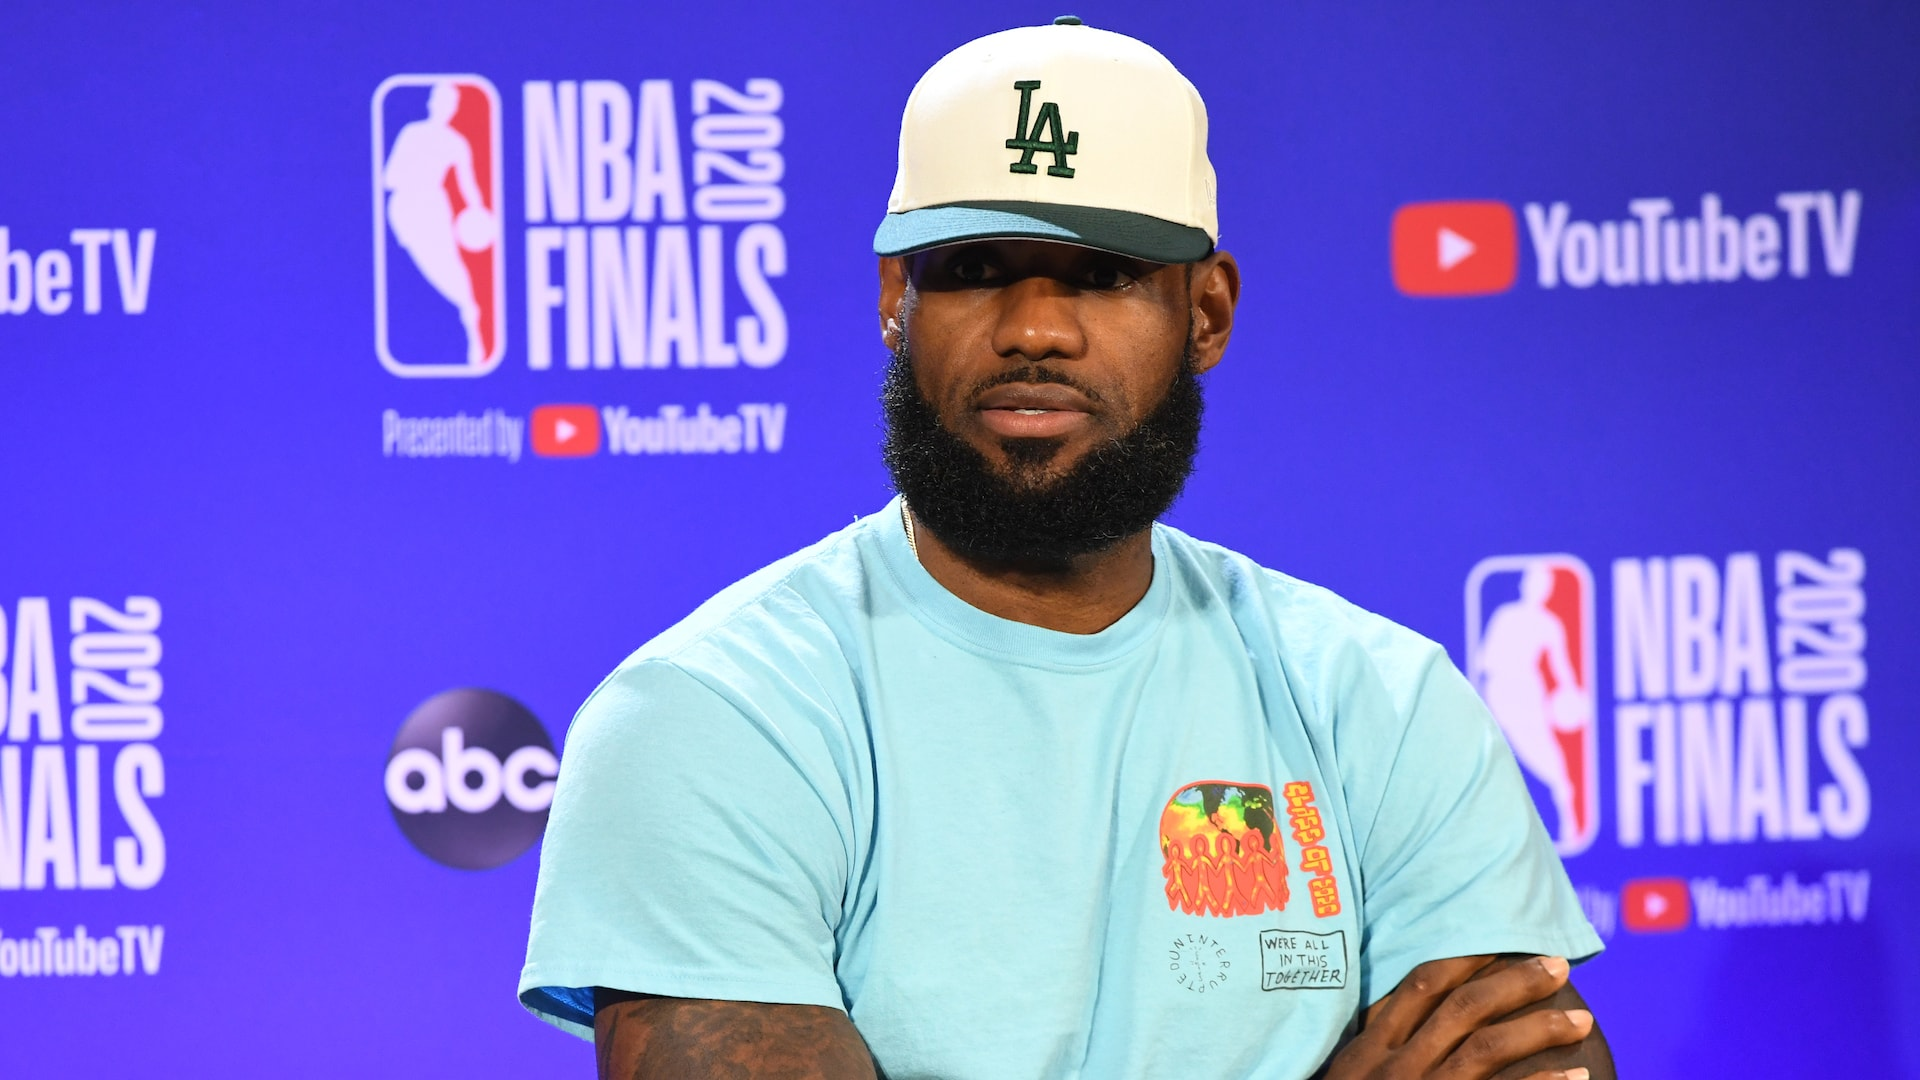 LeBron James says experience helped him 'have no weakness'